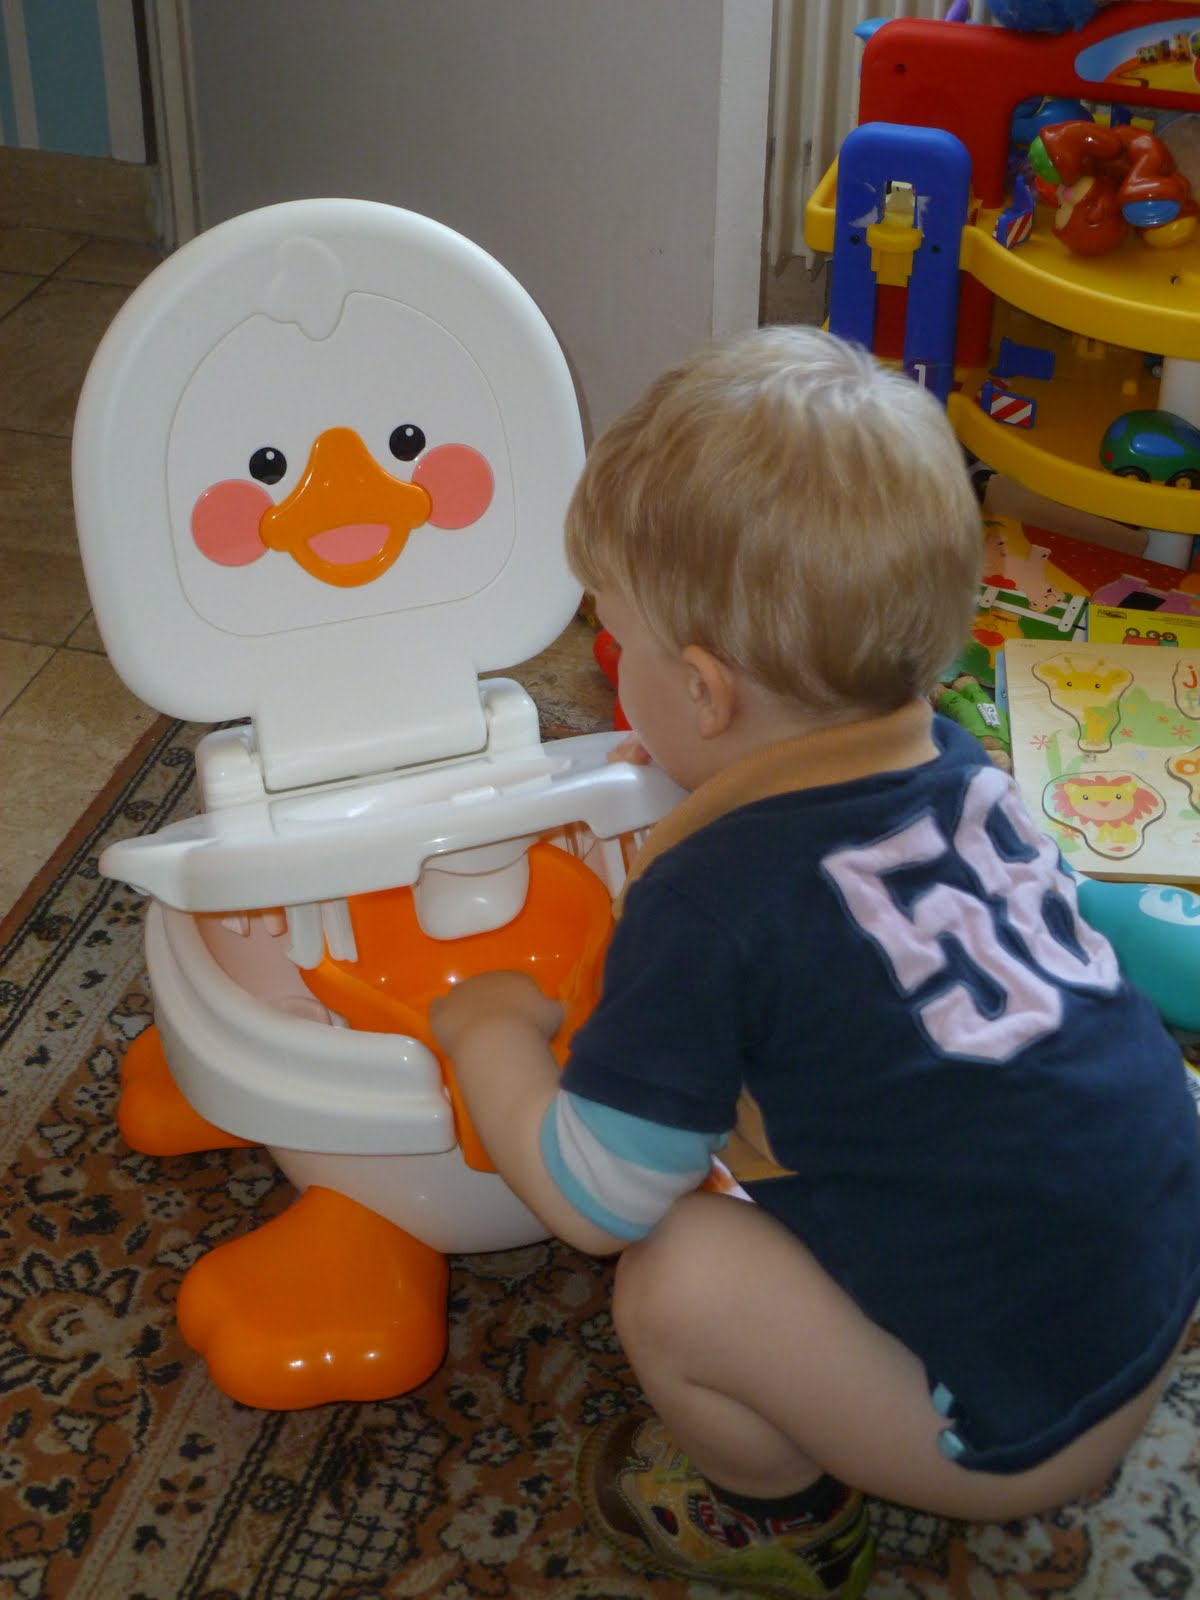 Fisher Price Duck Potty Chair Old People Lift Madhouse Family Reviews Ducky Fun Review